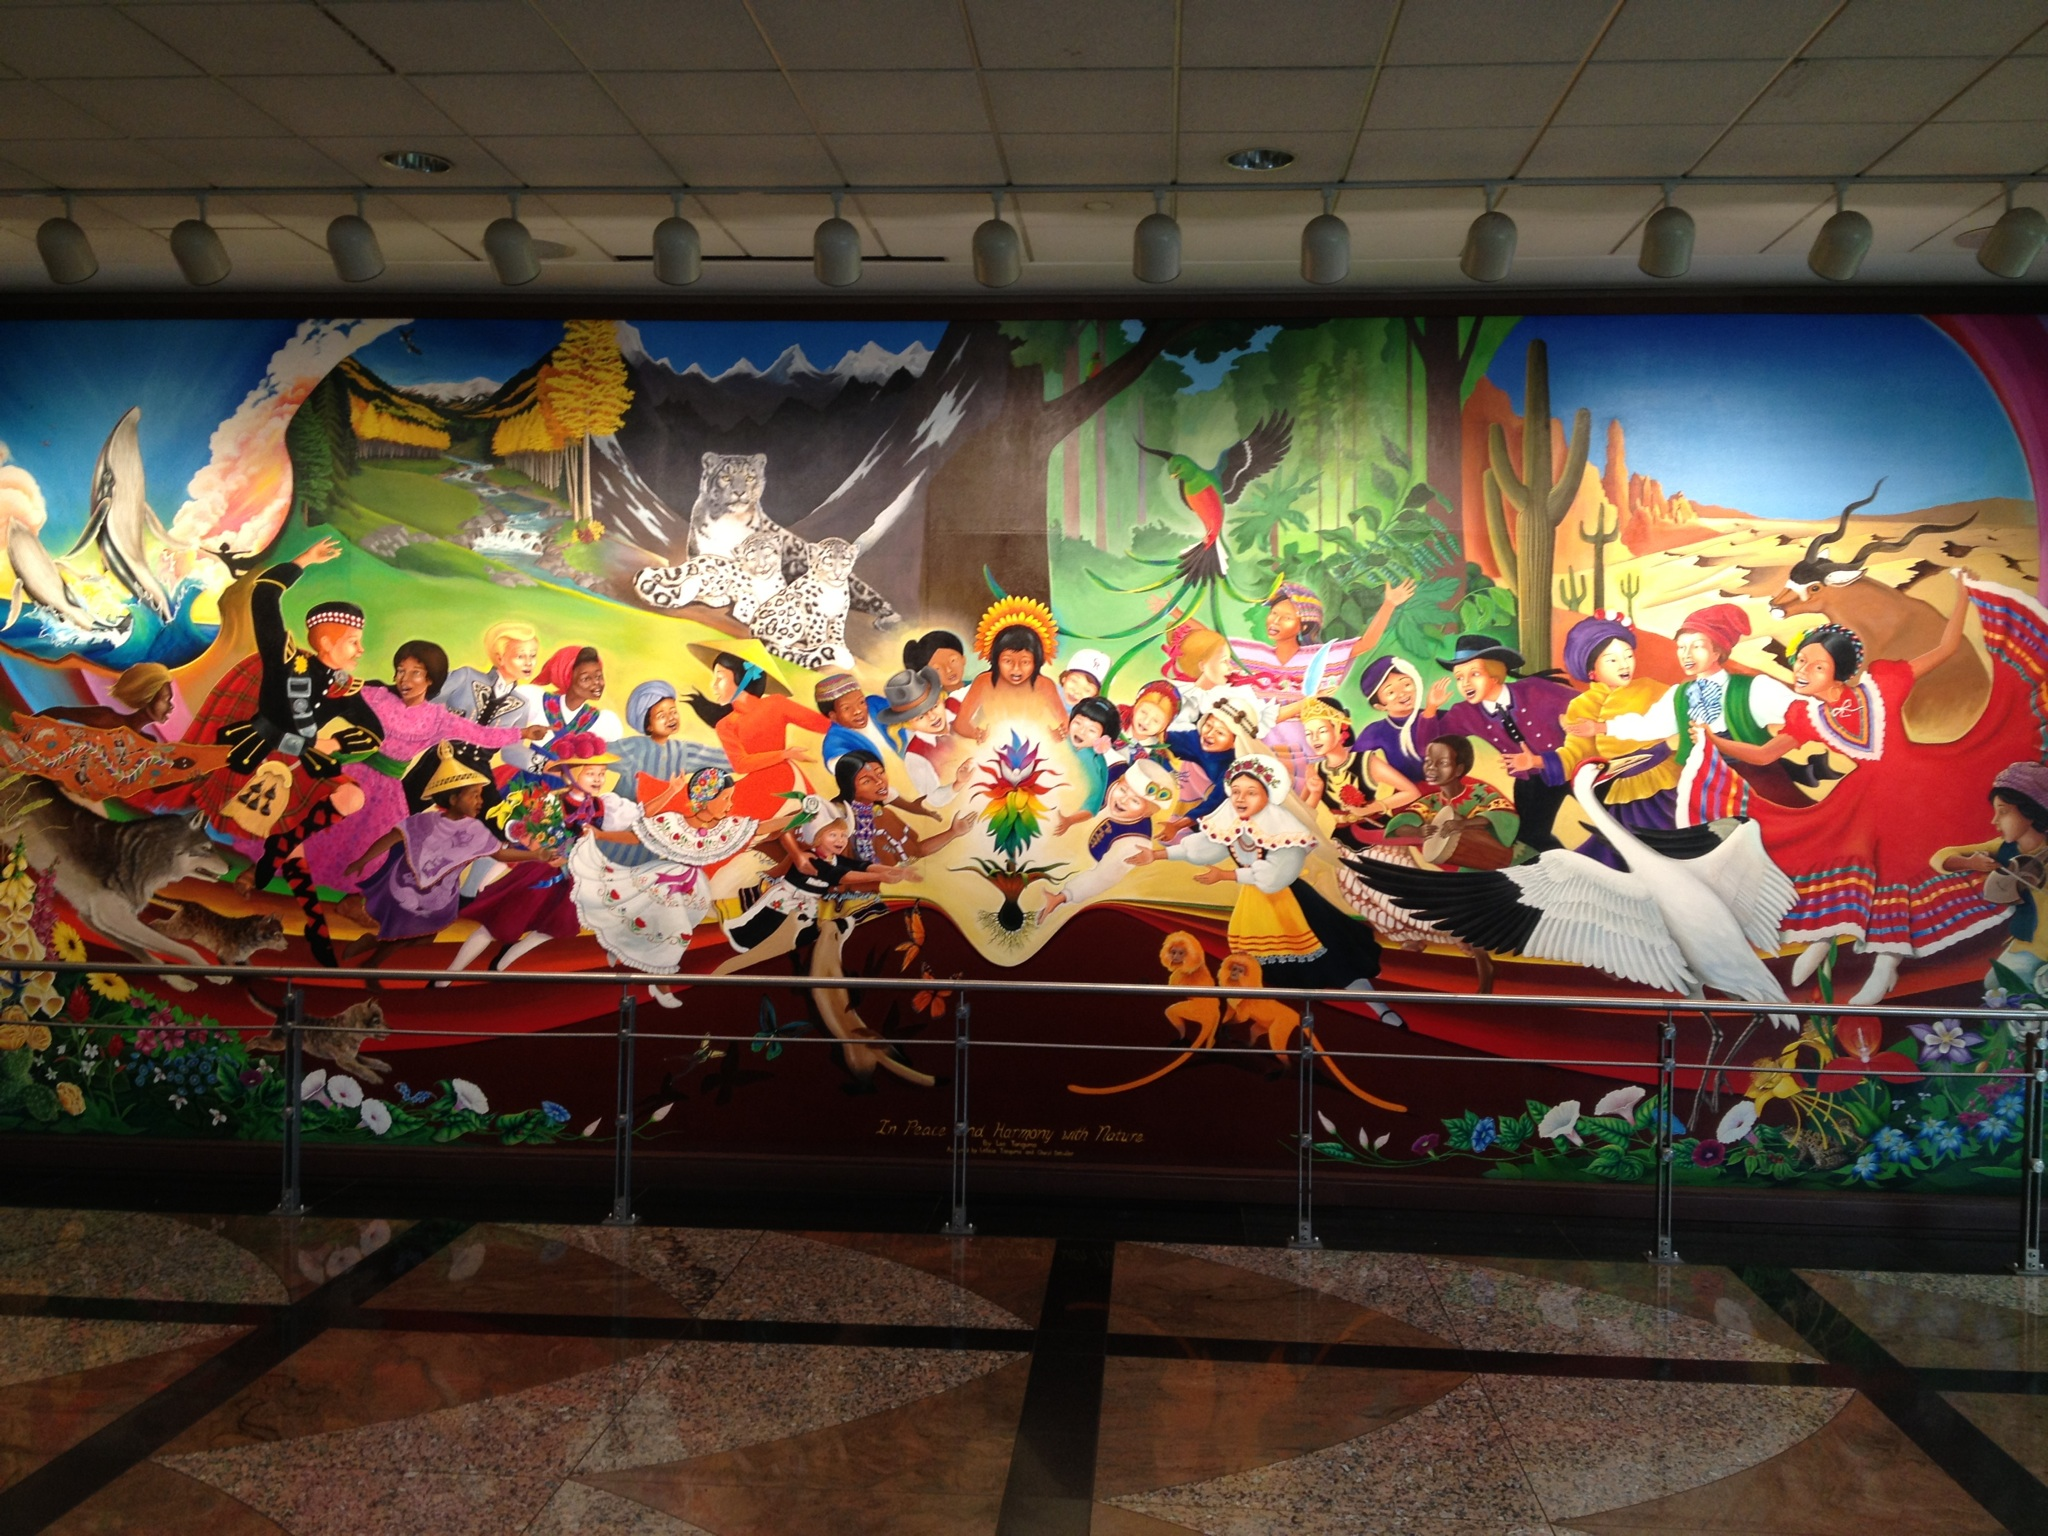 Whistleblower reveals secret underground base beneath for Denver mural airport